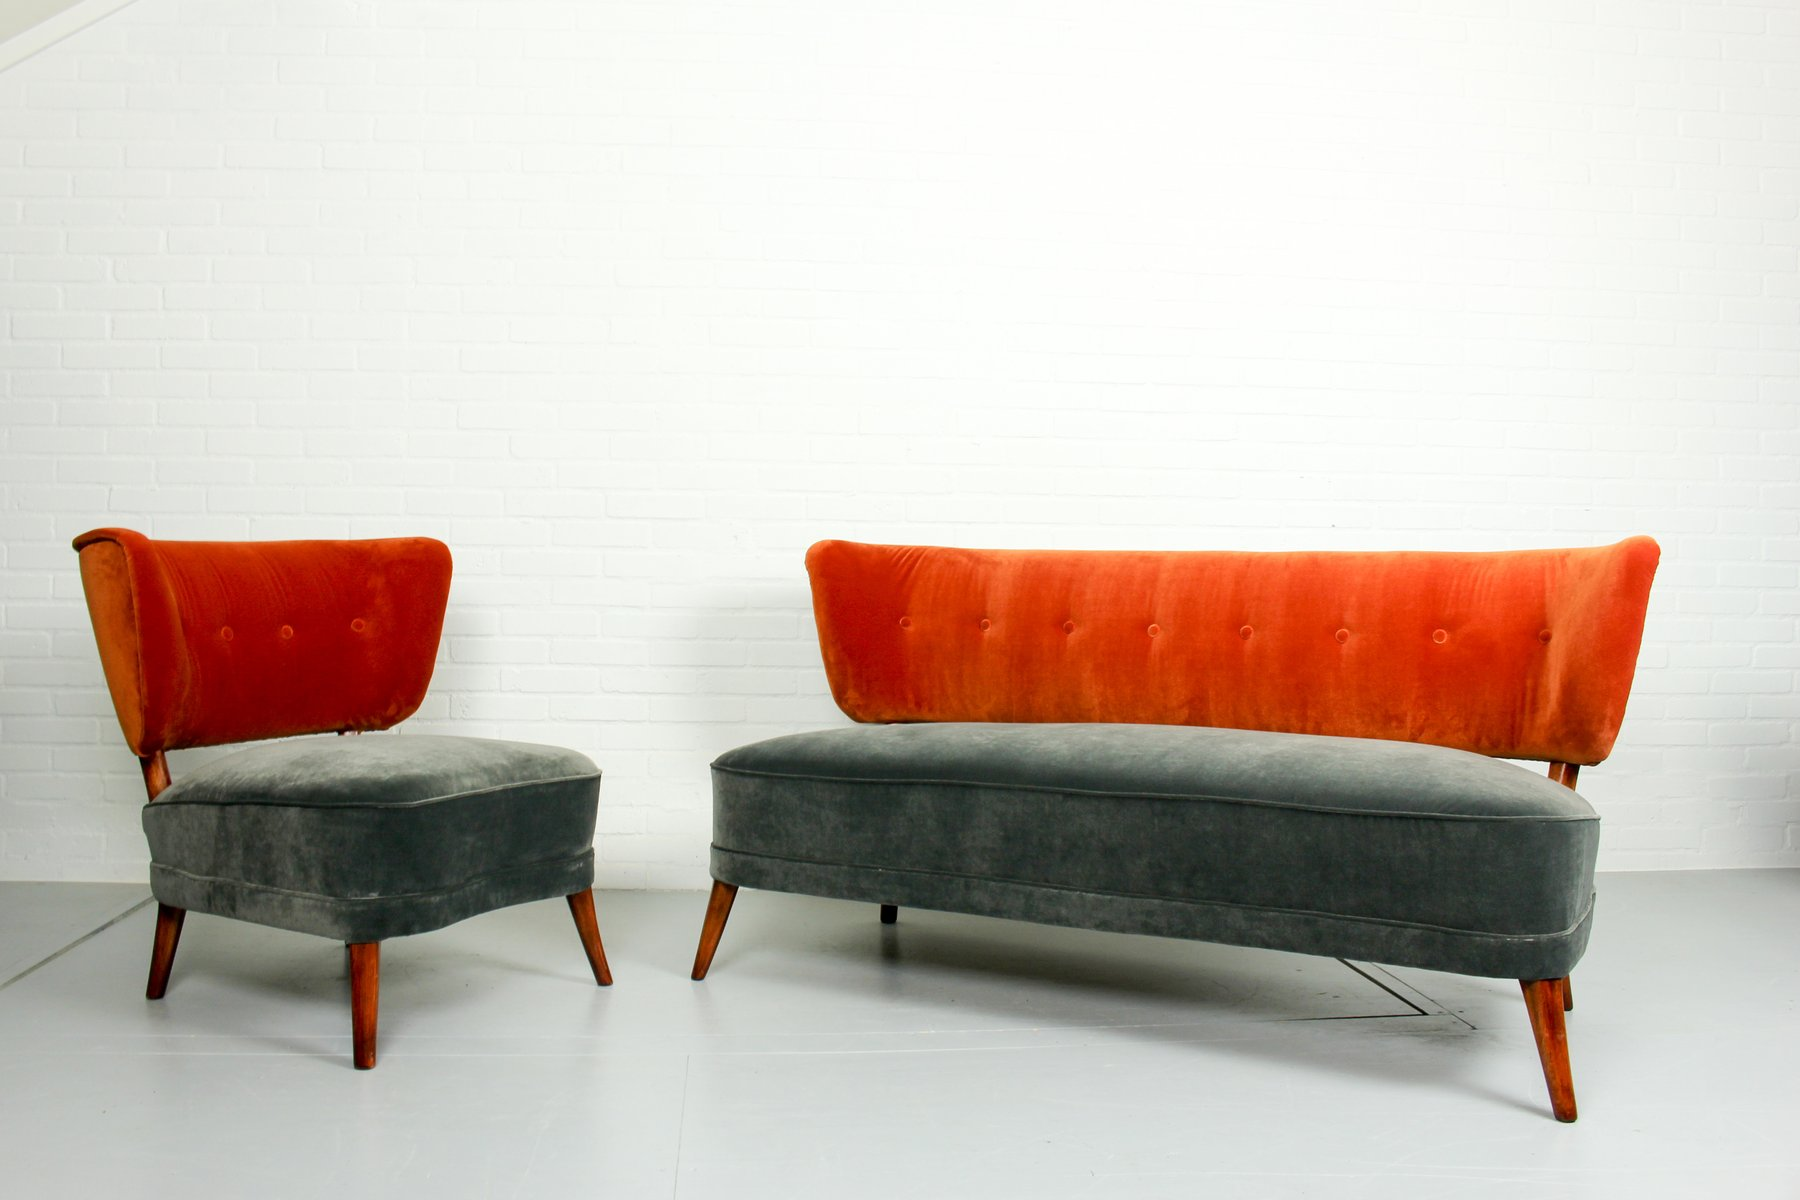 2er Sofa Samt Vintage Cocktail Sessel Und Sofa Aus Samt 1950er 2er Set